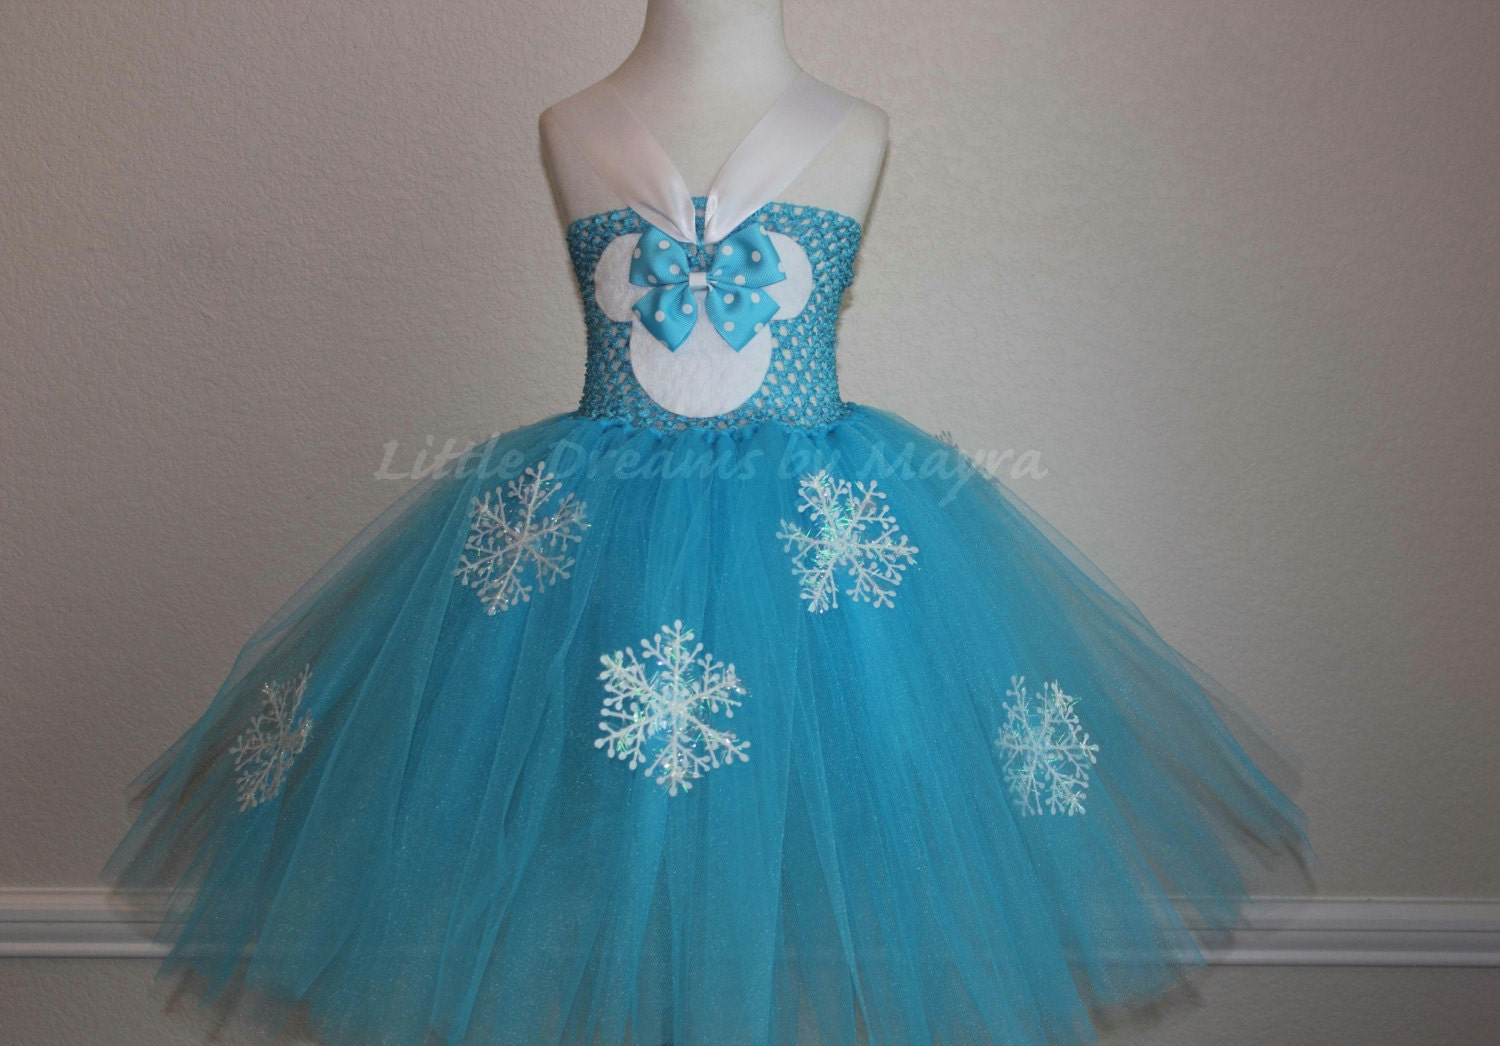 Frozen Minnie mouse inspired tutu dress and ears headband